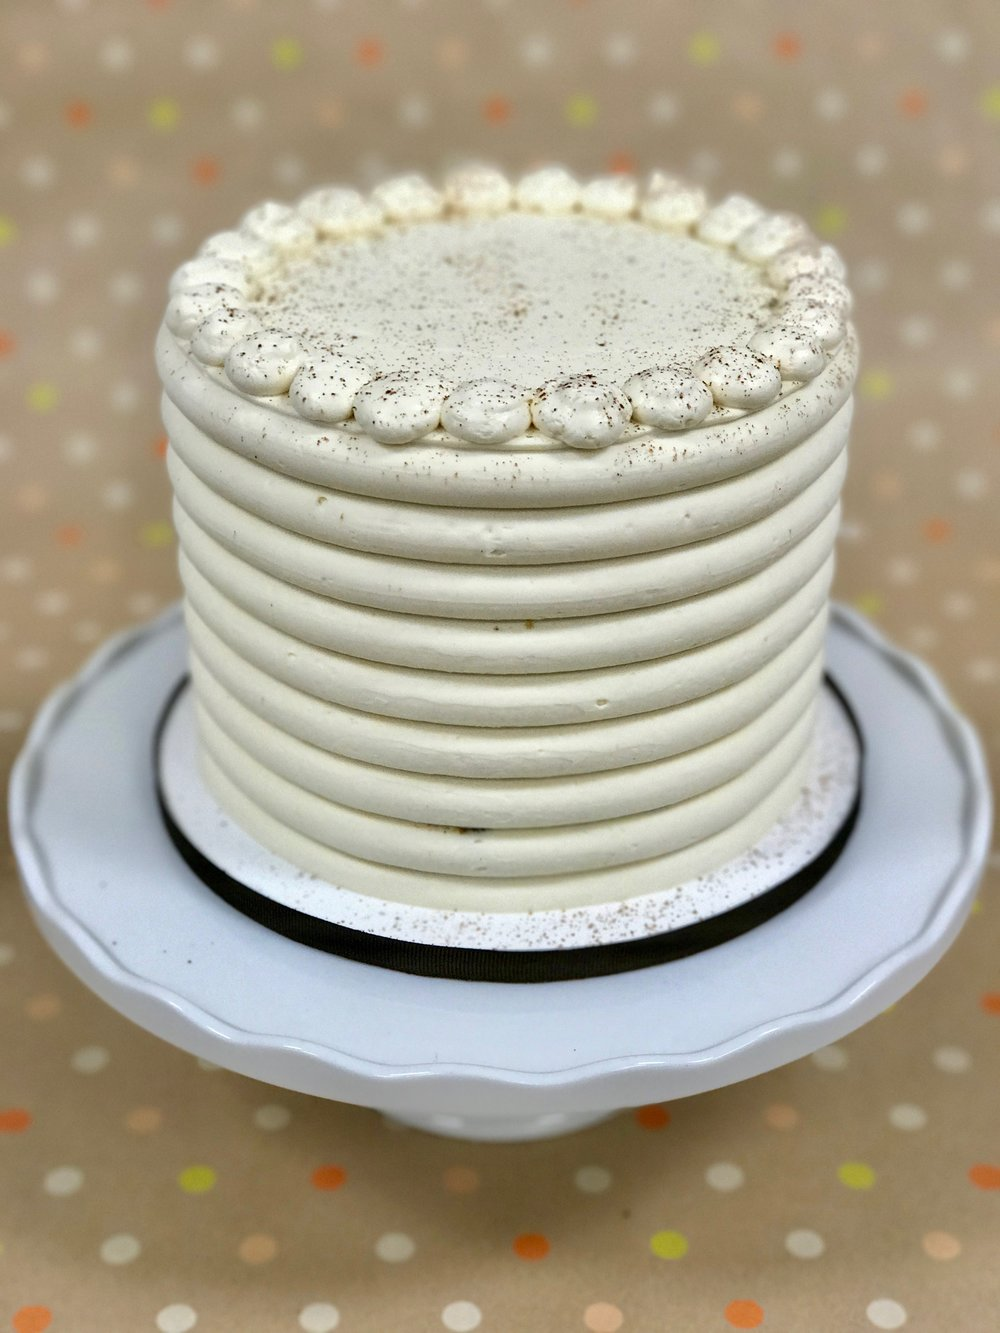 Carrot - Cake: Carrot Spice (no nuts or raisins)Filling: Vanilla Cream CheeseFrosting: Vanilla Swiss Meringue Buttercream and Dusted Cinnamon